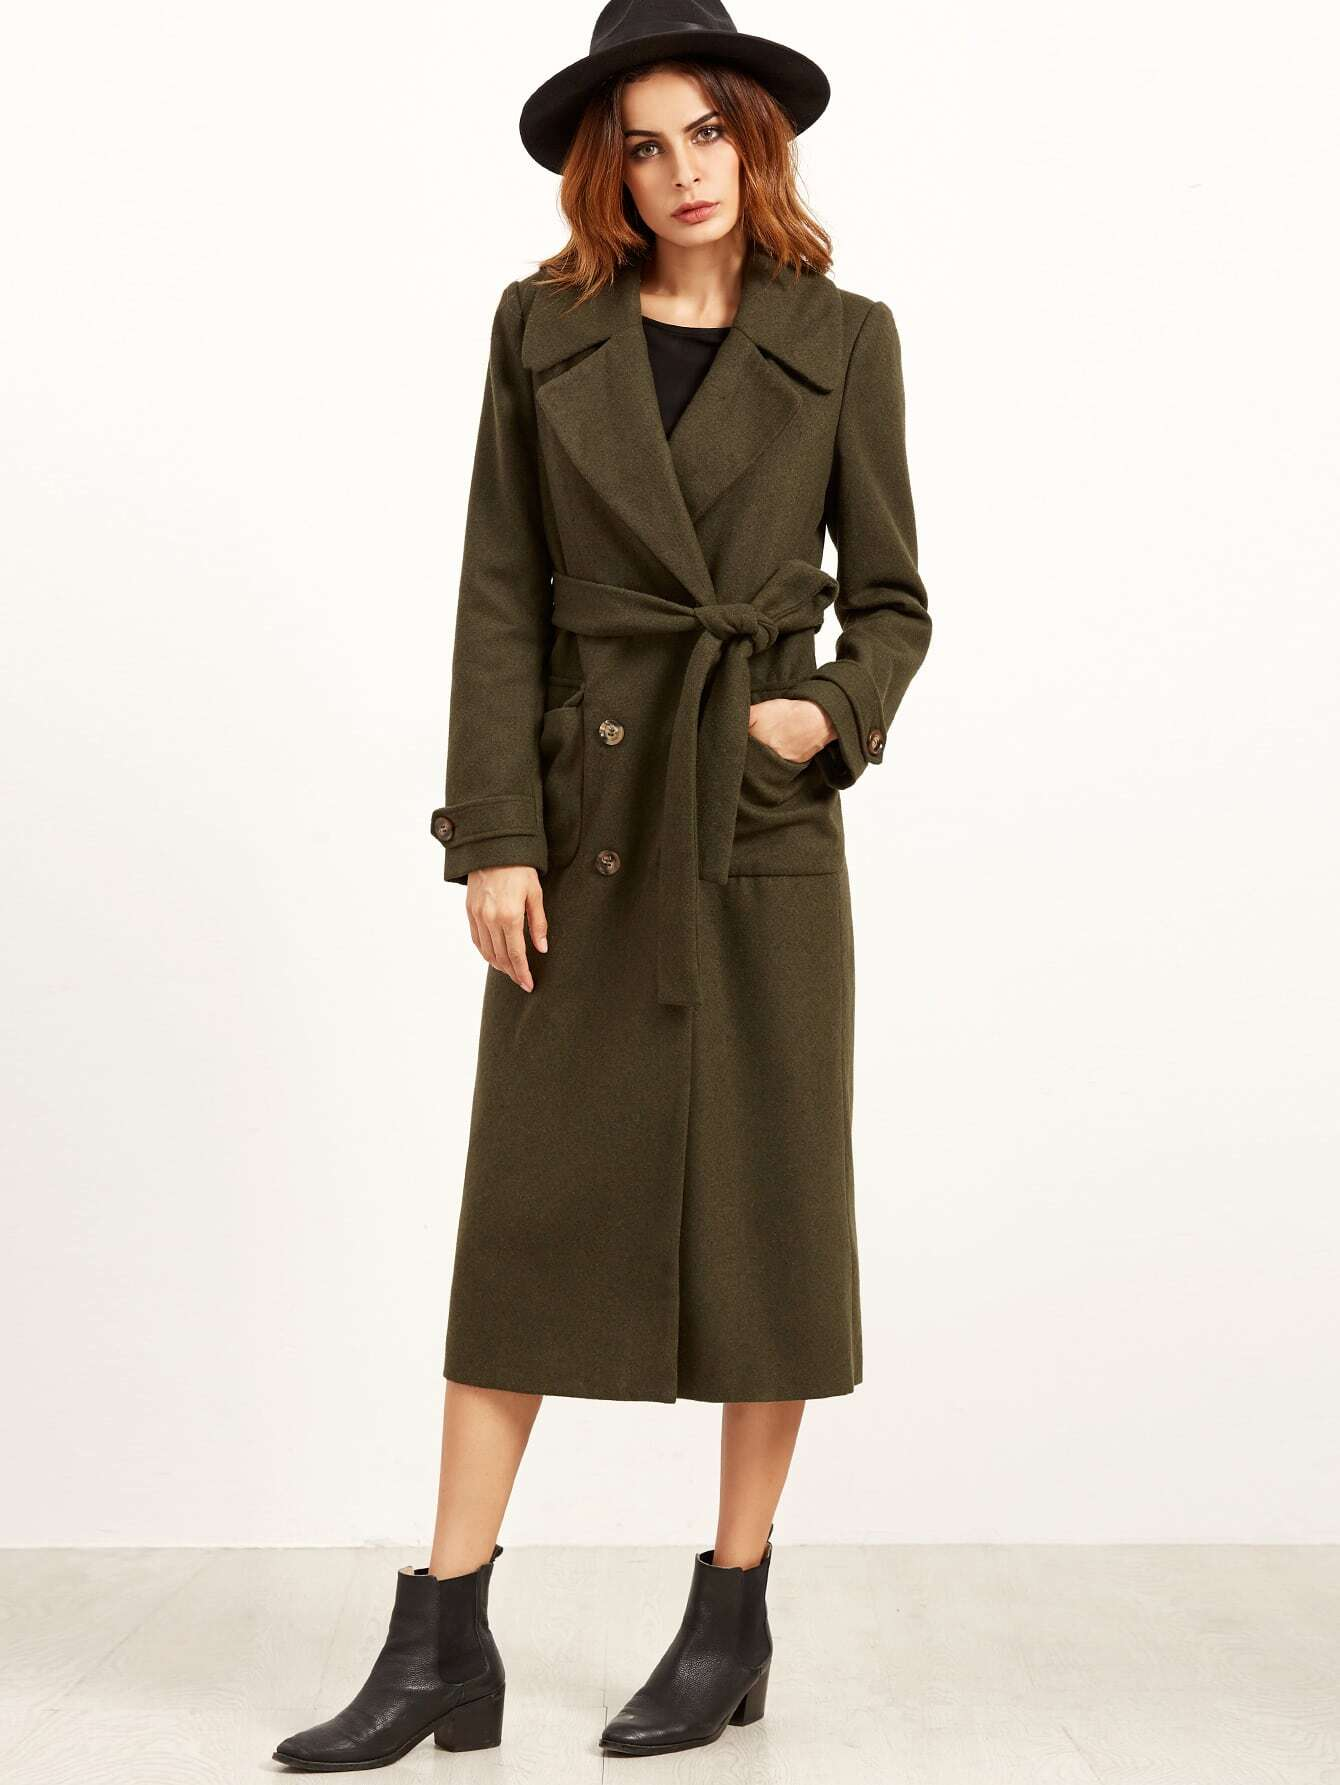 marc coat double breasted olive jpg 1152x768